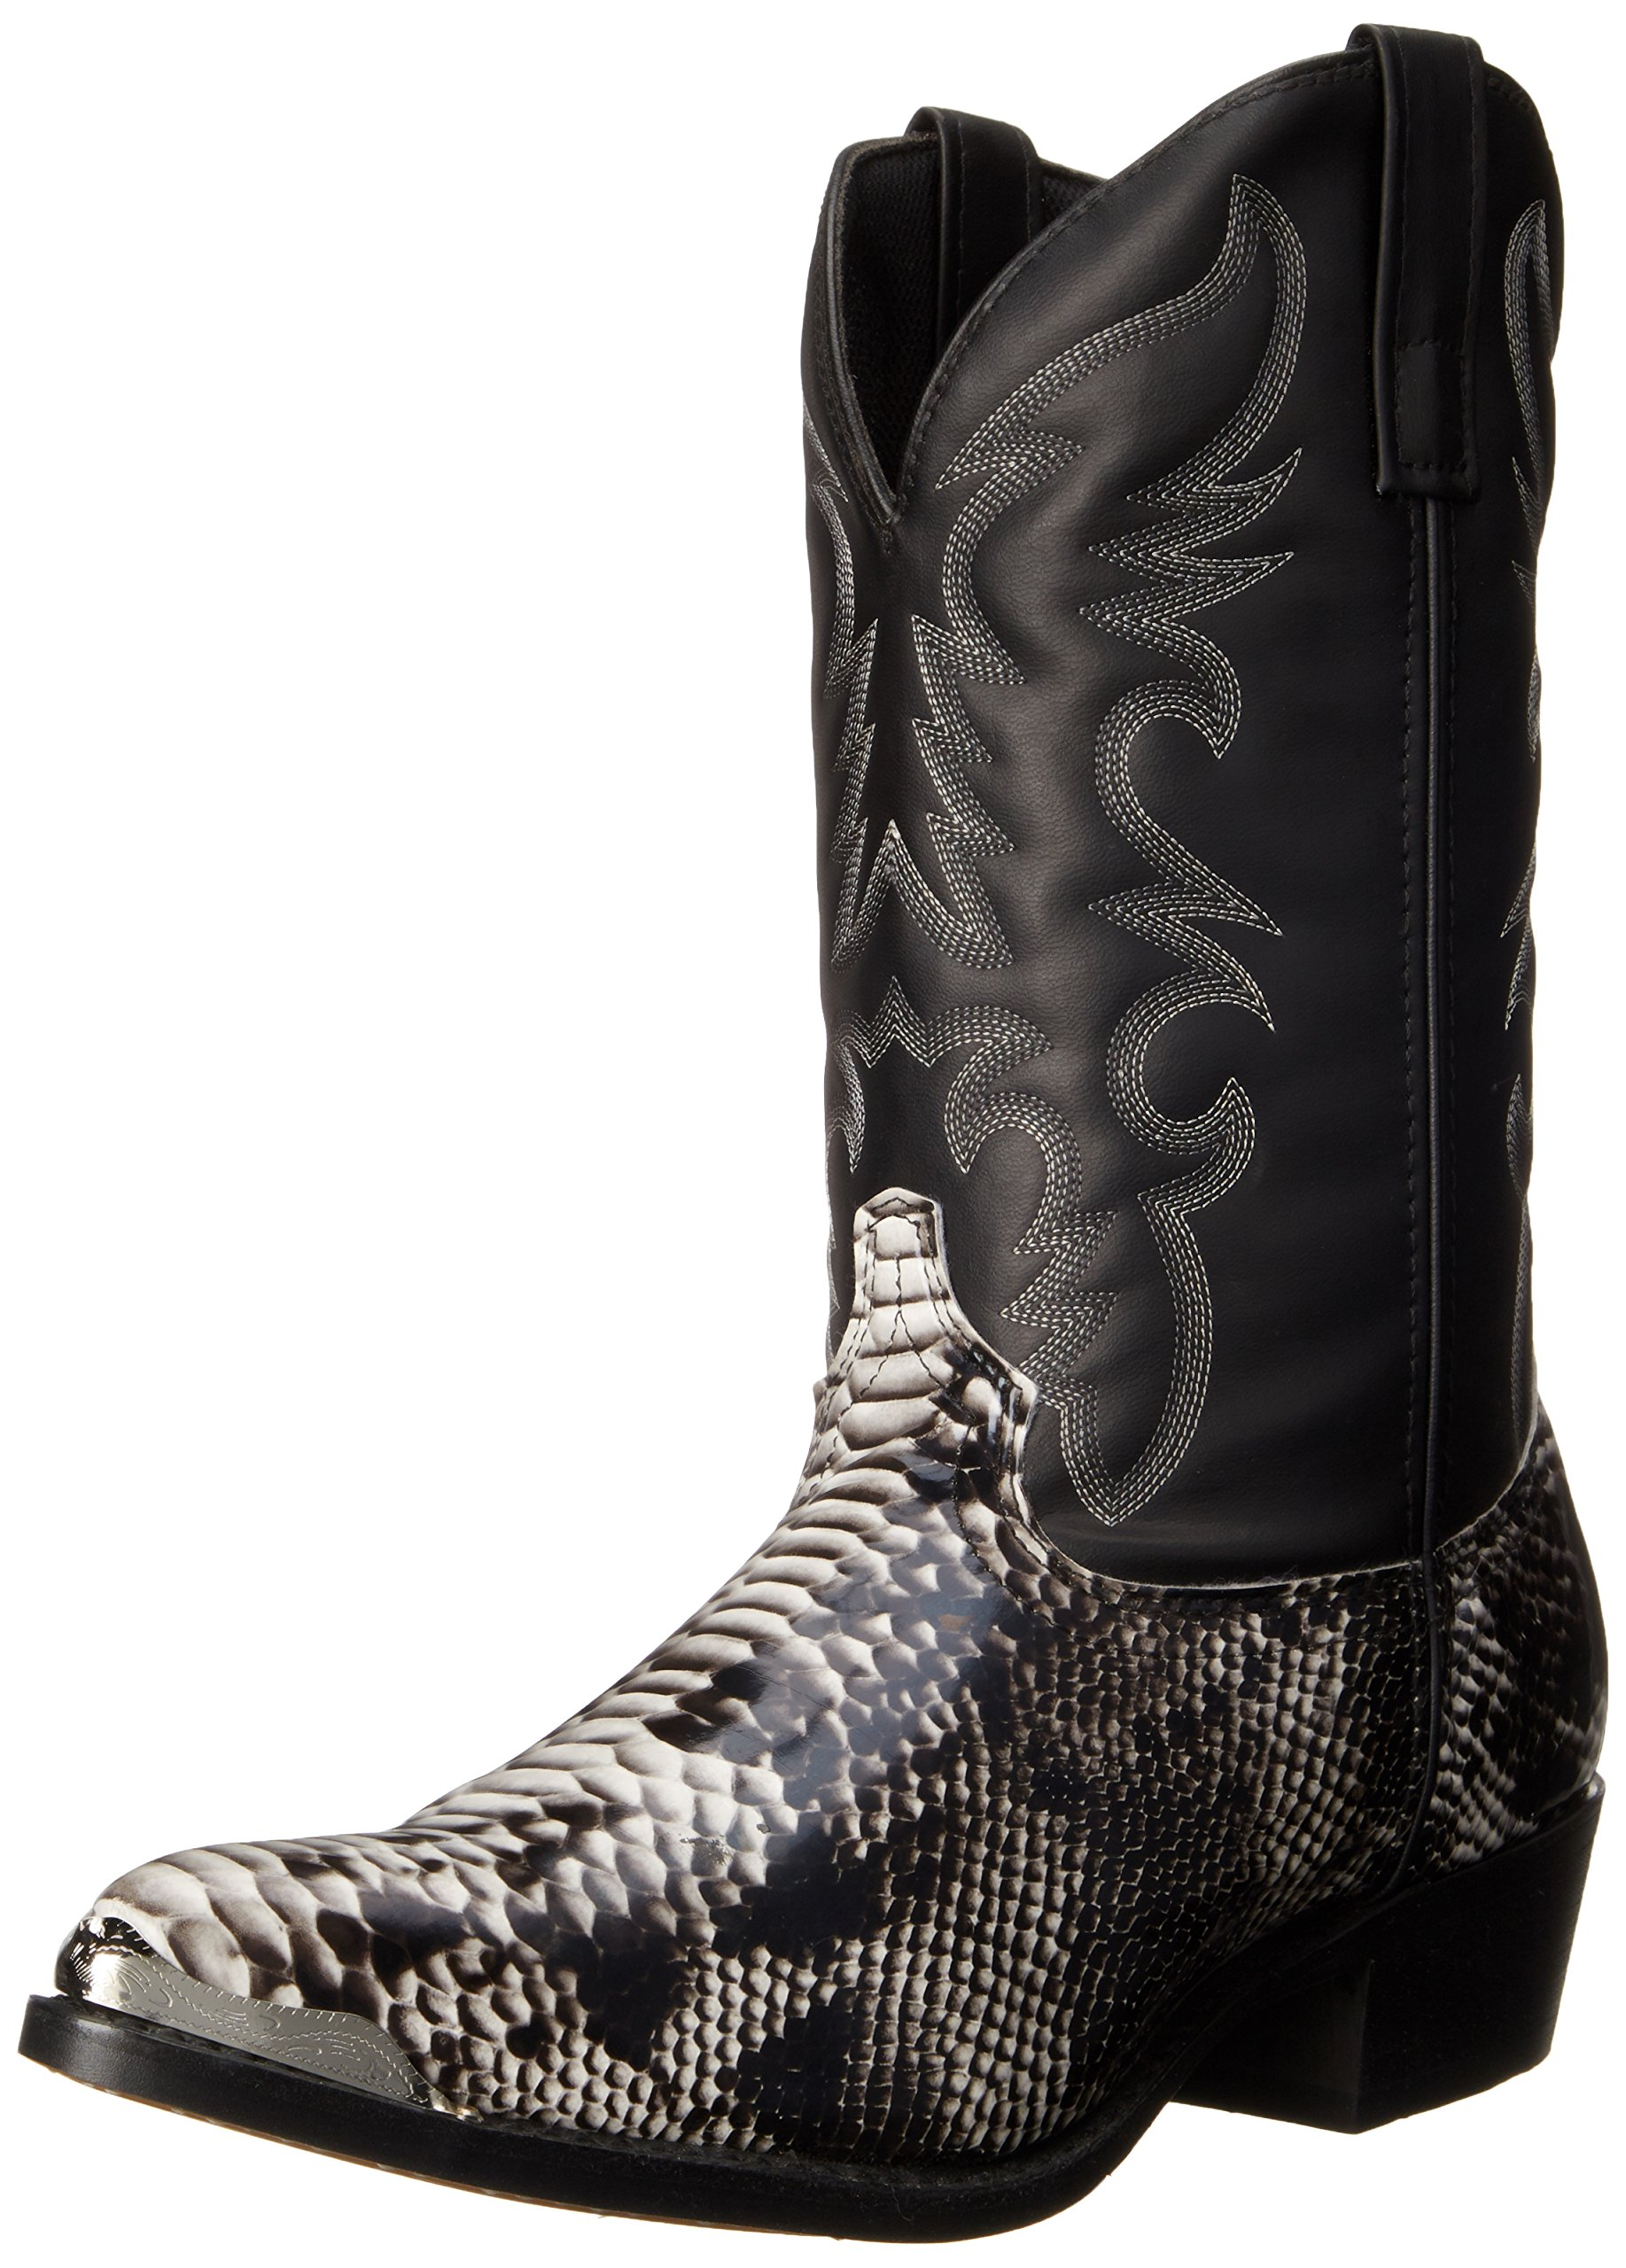 Laredo Men's 68067 Monty Western Boot,Black/White,11 XW US